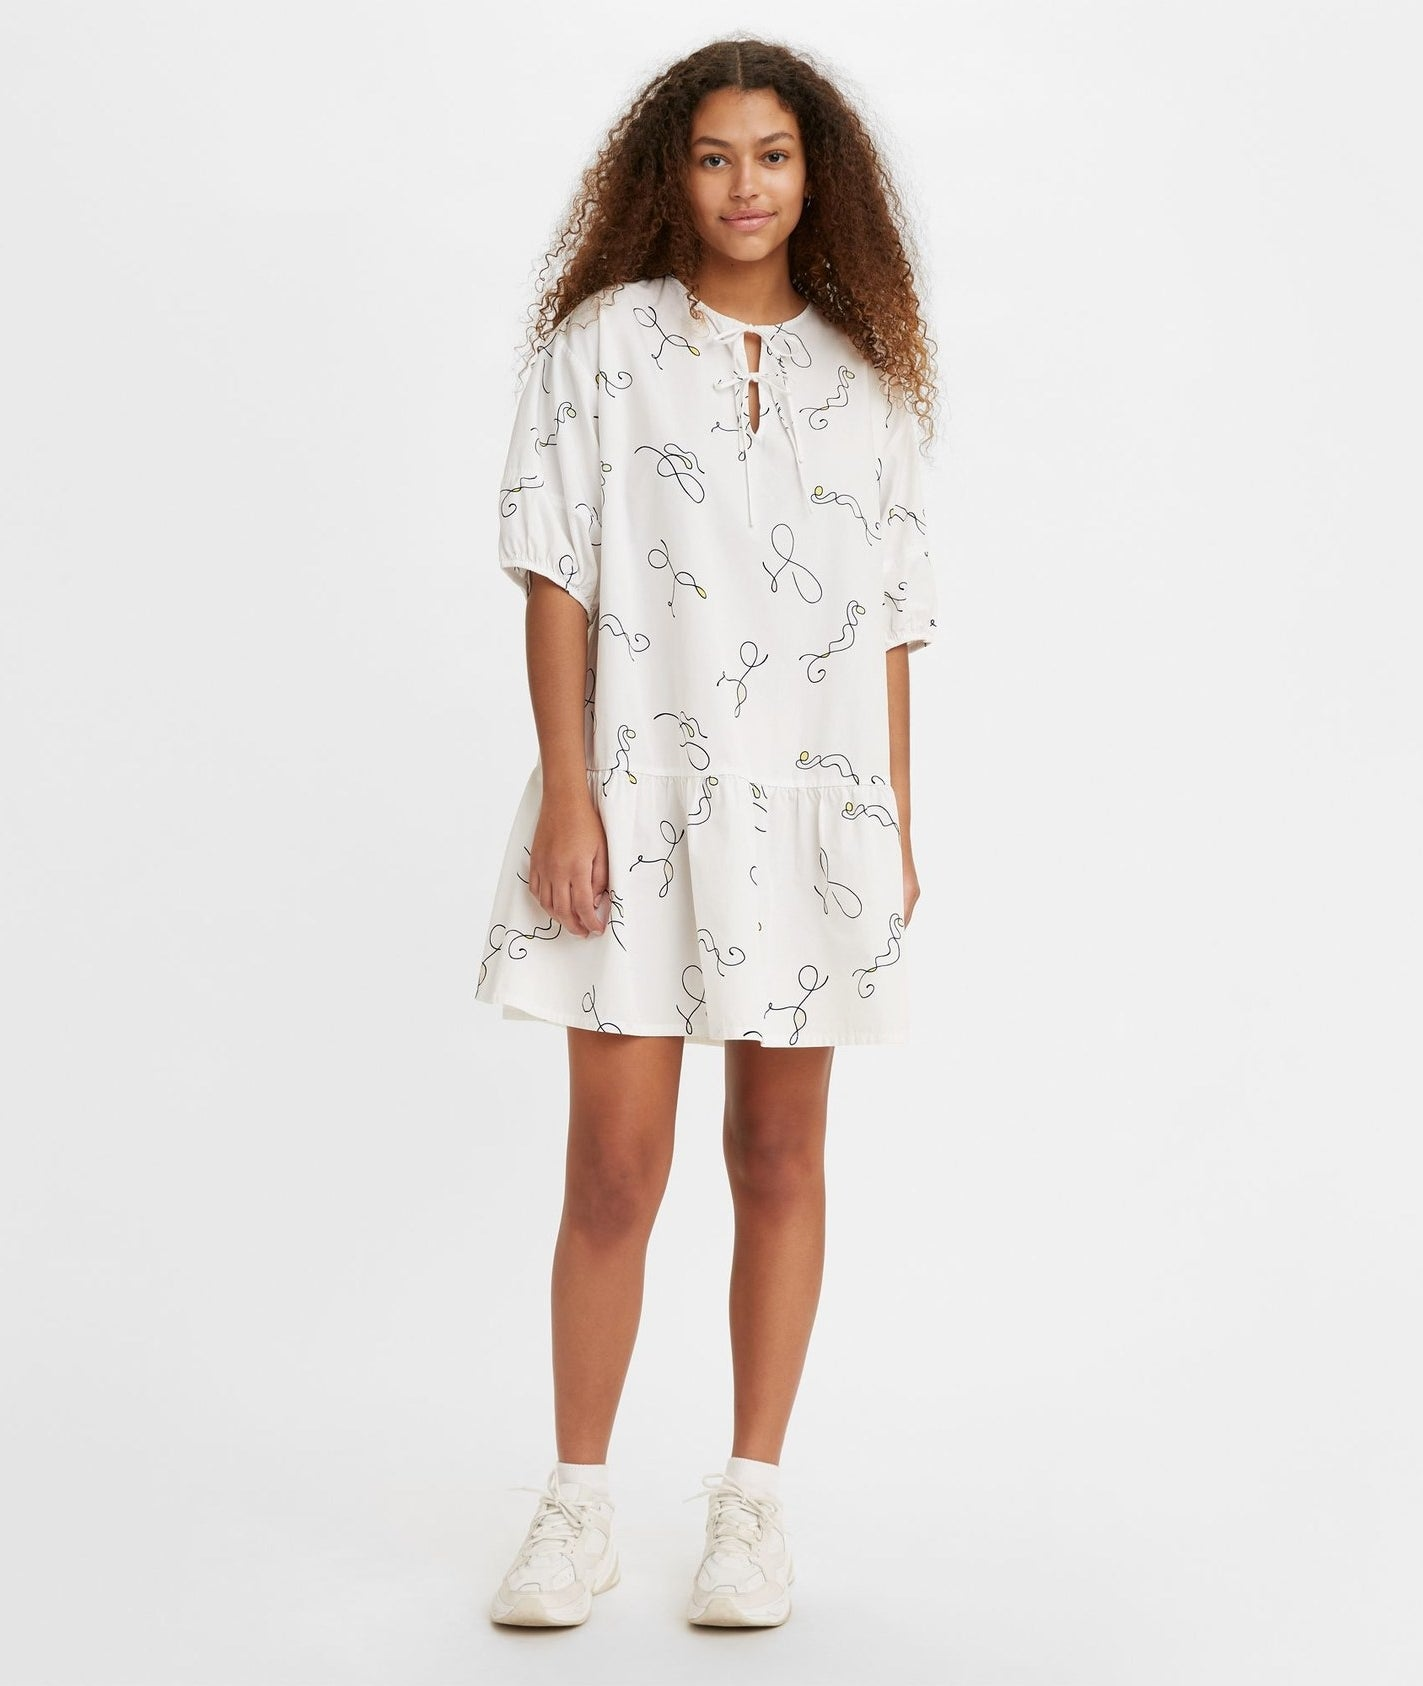 a model wearing the Isla puff sleeve dress with white sneakers